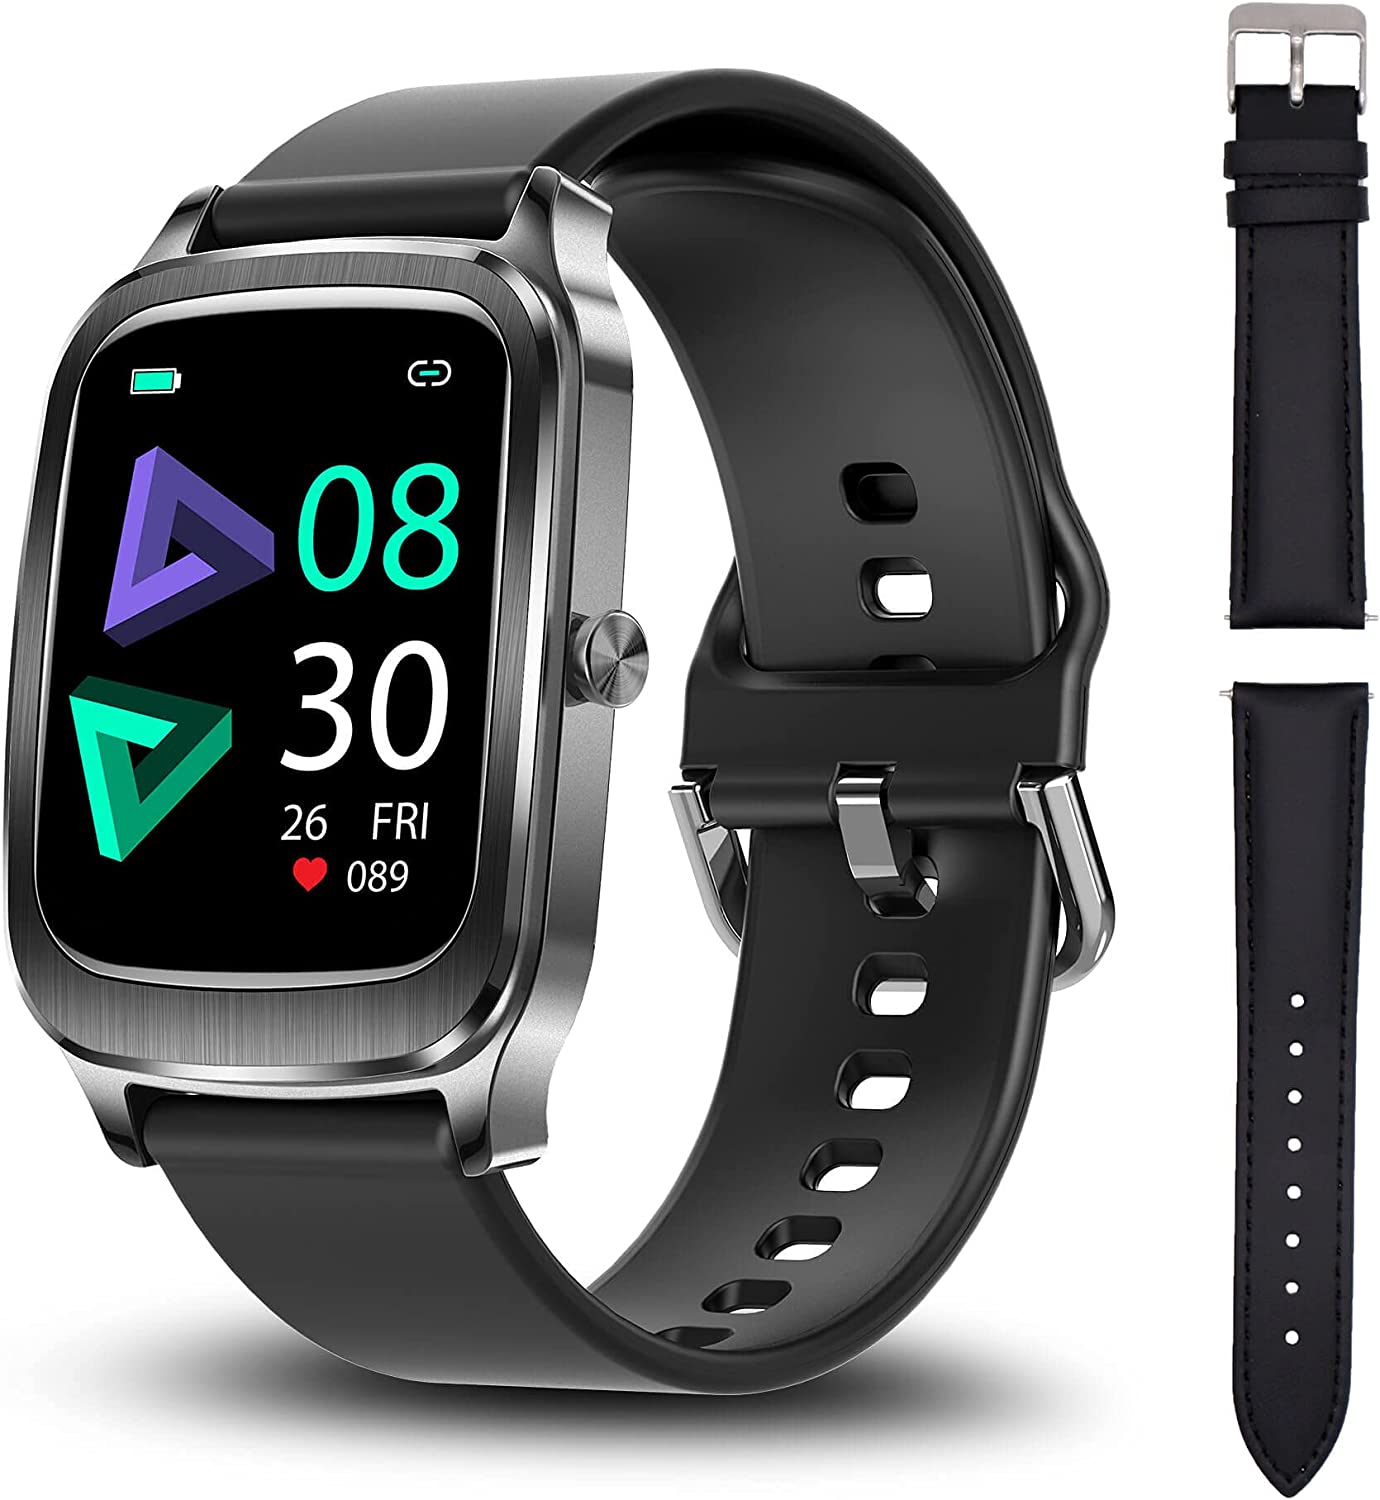 Smart Watch, Hongmed Sport Fitness Tracker with Heart Rate, Sleep Monitor, Smartwatch for Android Phones iPhone Compatible, 5ATM Waterproof Swimming Activity Tracking with Compass for Men Women Black